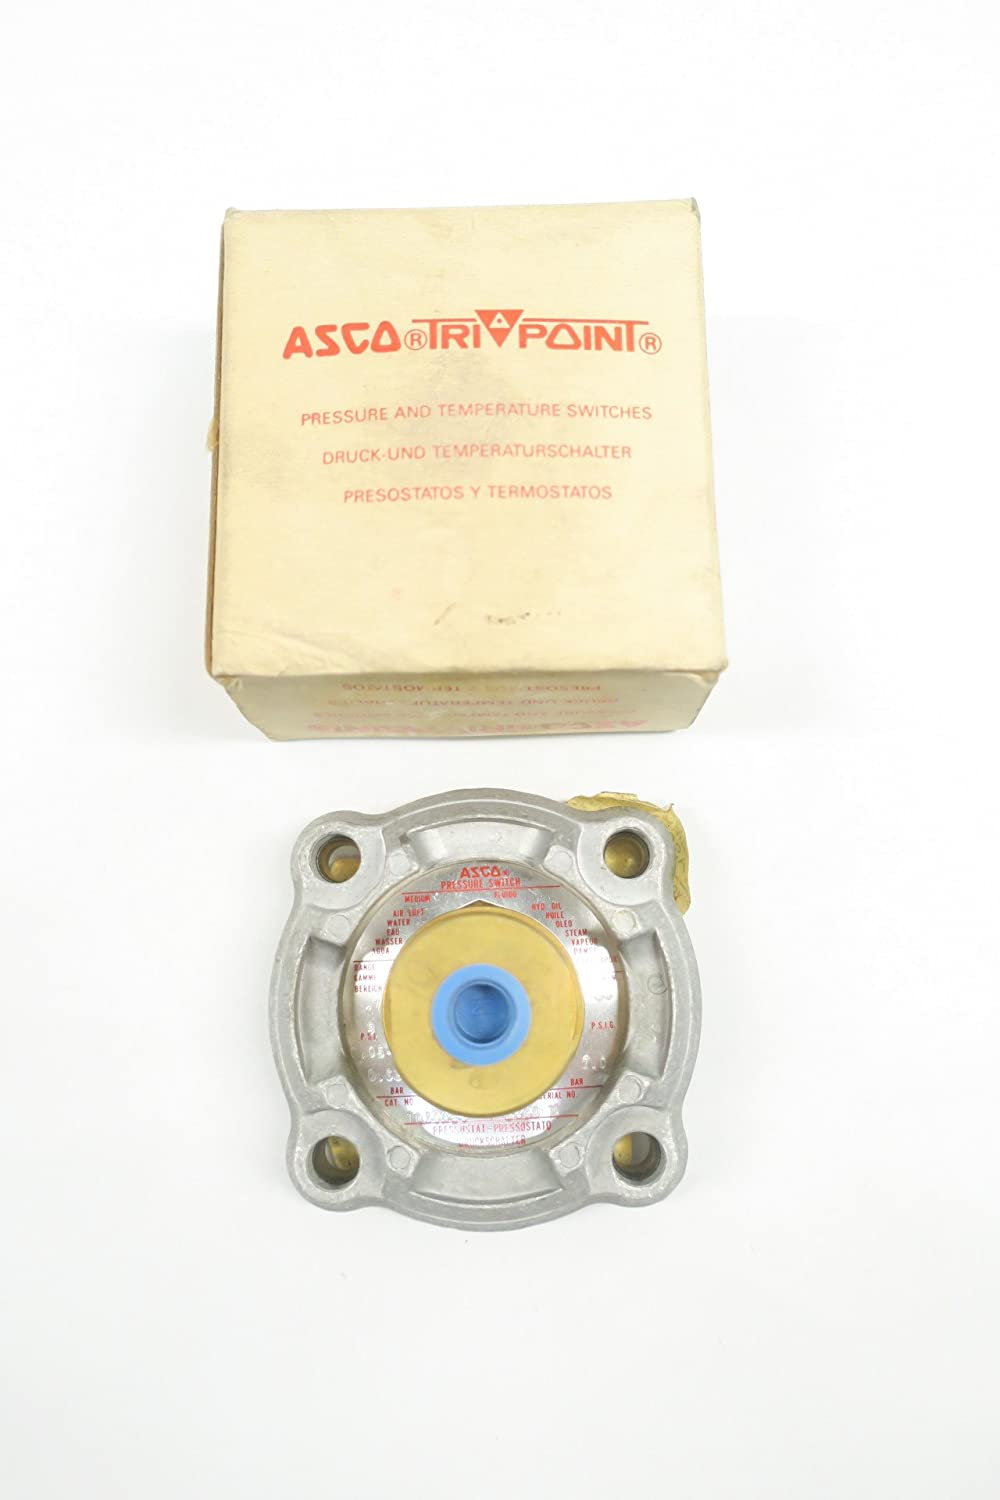 Amazon.com: ASCO TD30A21 TRI-POINT PRESSURE SWITCH D586616: Industrial & Scientific